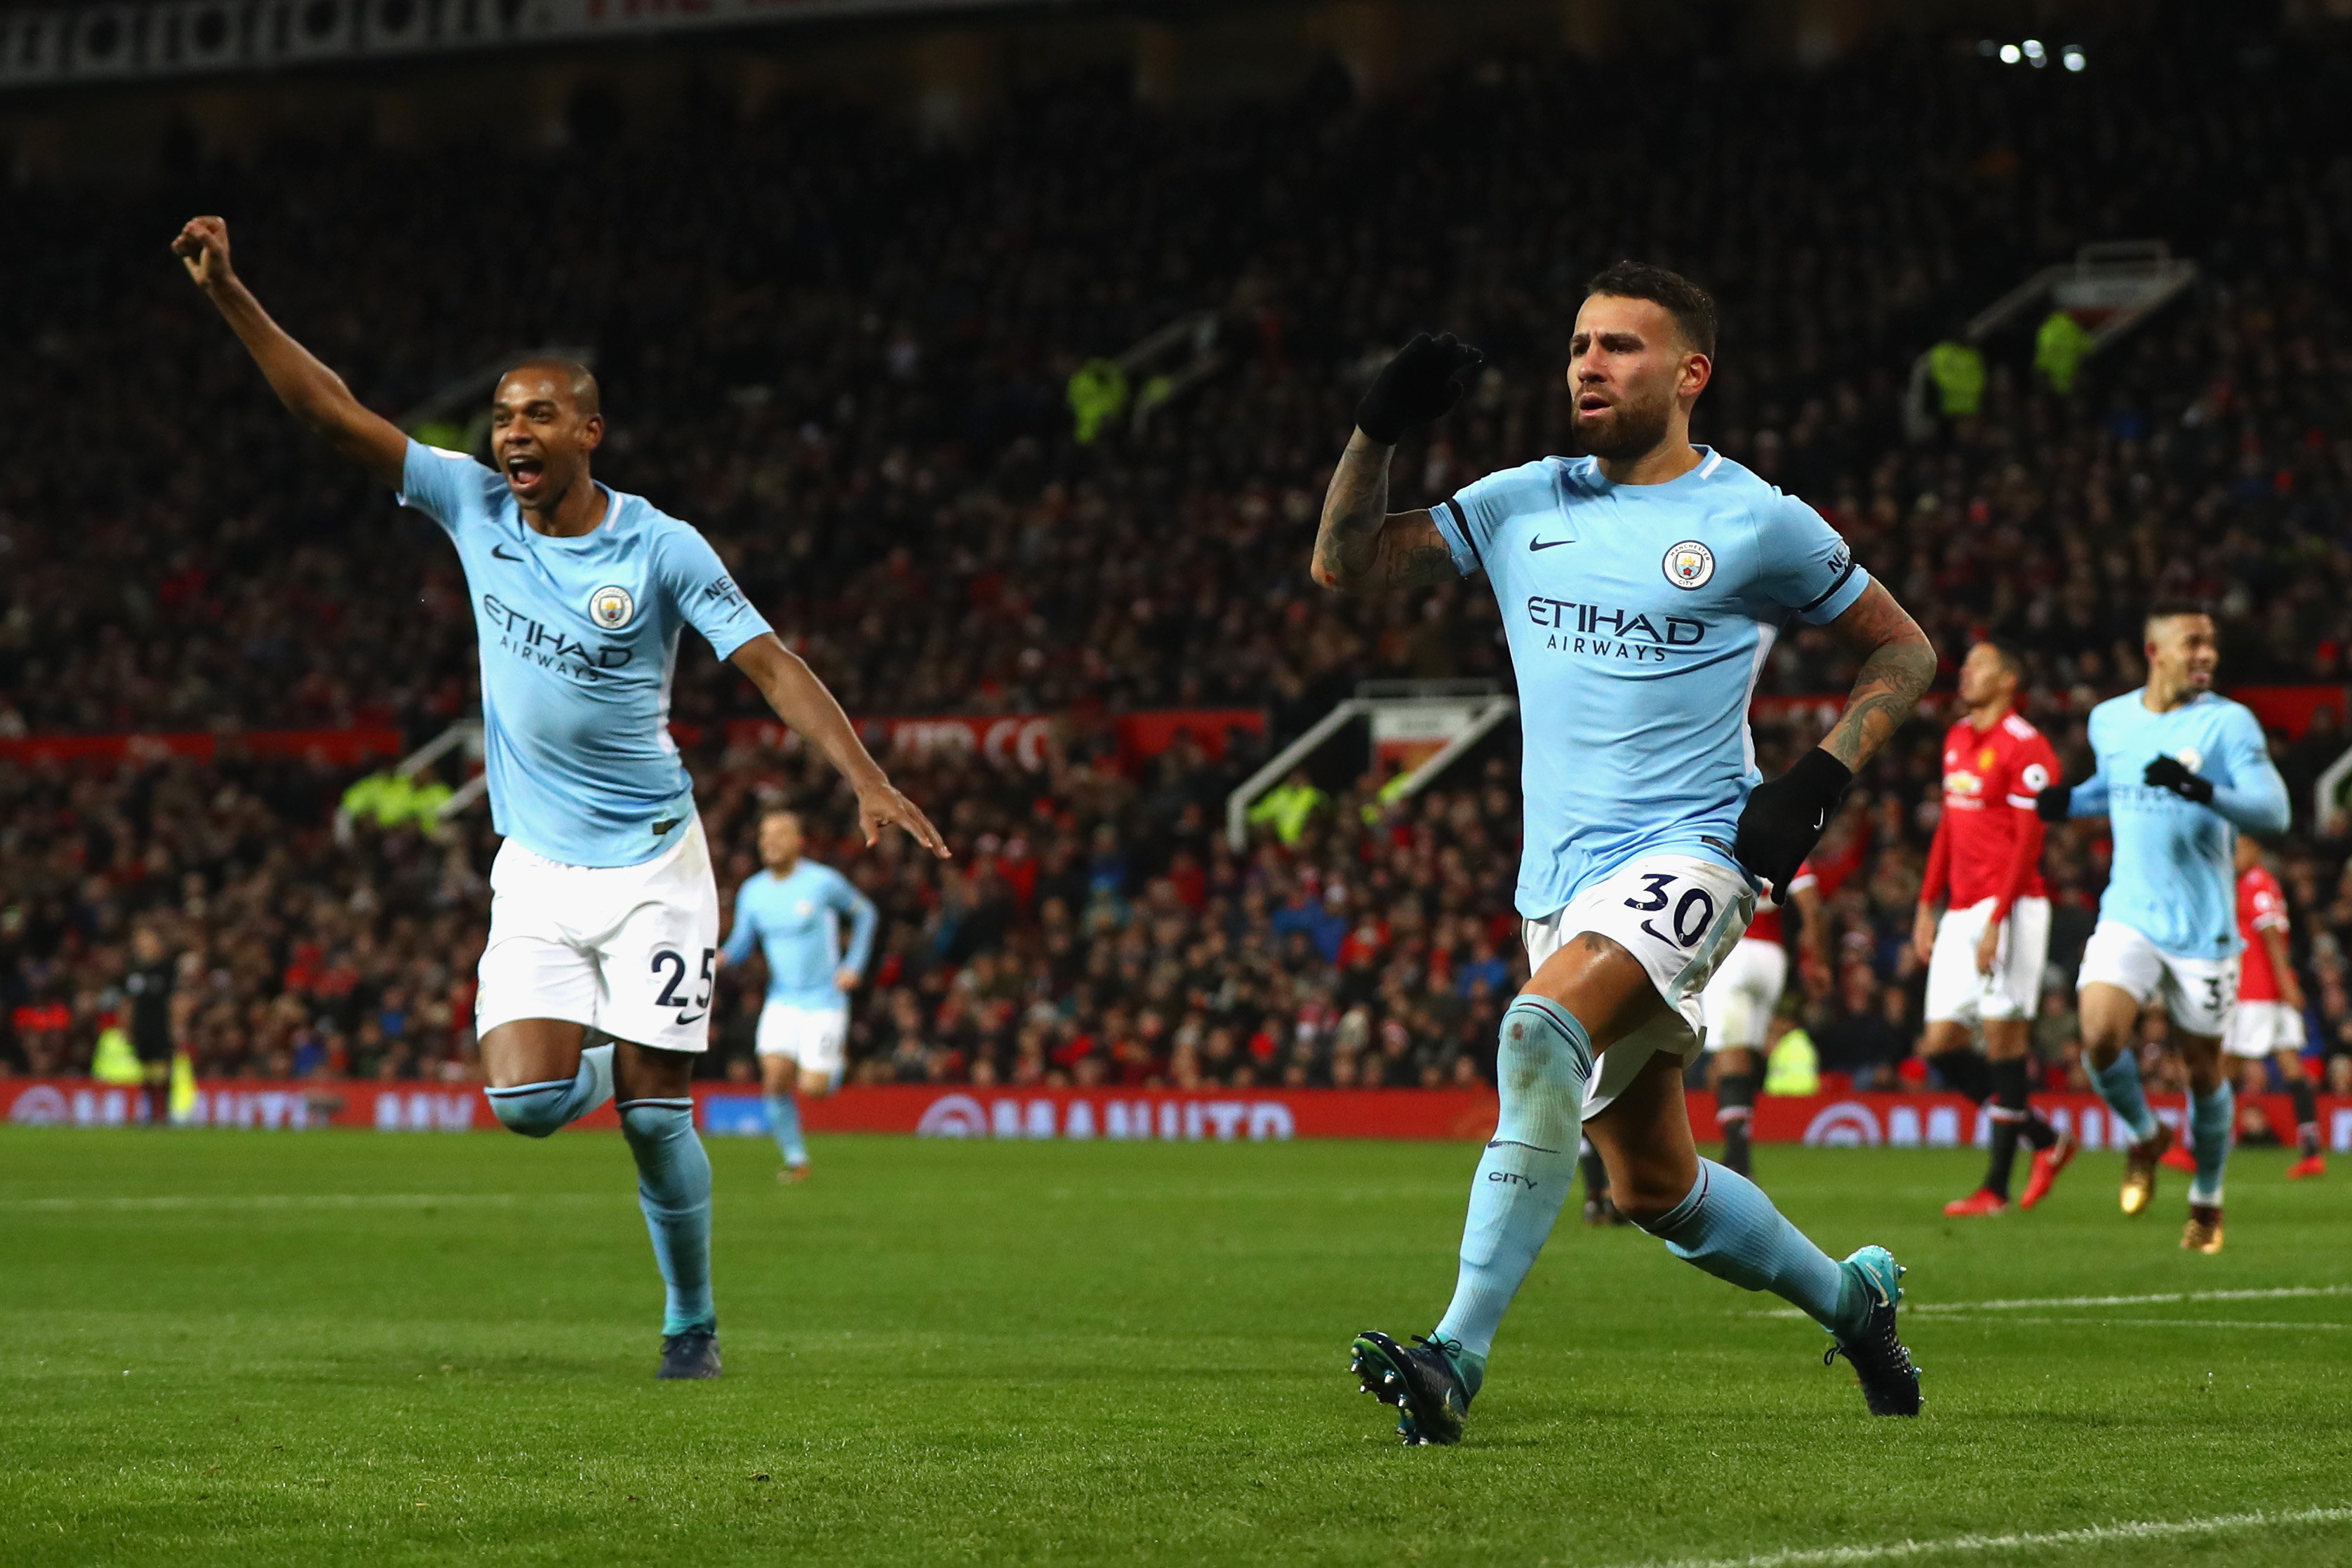 Manchester City eye record against Swansea